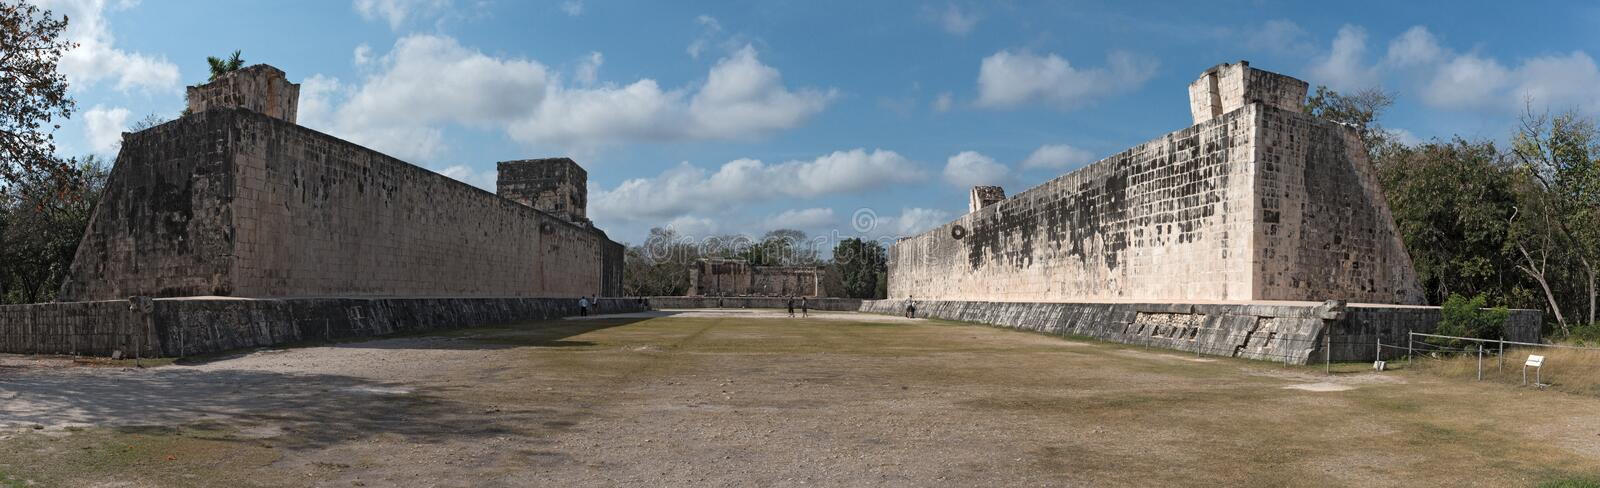 Panoramic view of ball court at Chichen Itza, Yucatan, Mexico royalty free stock image